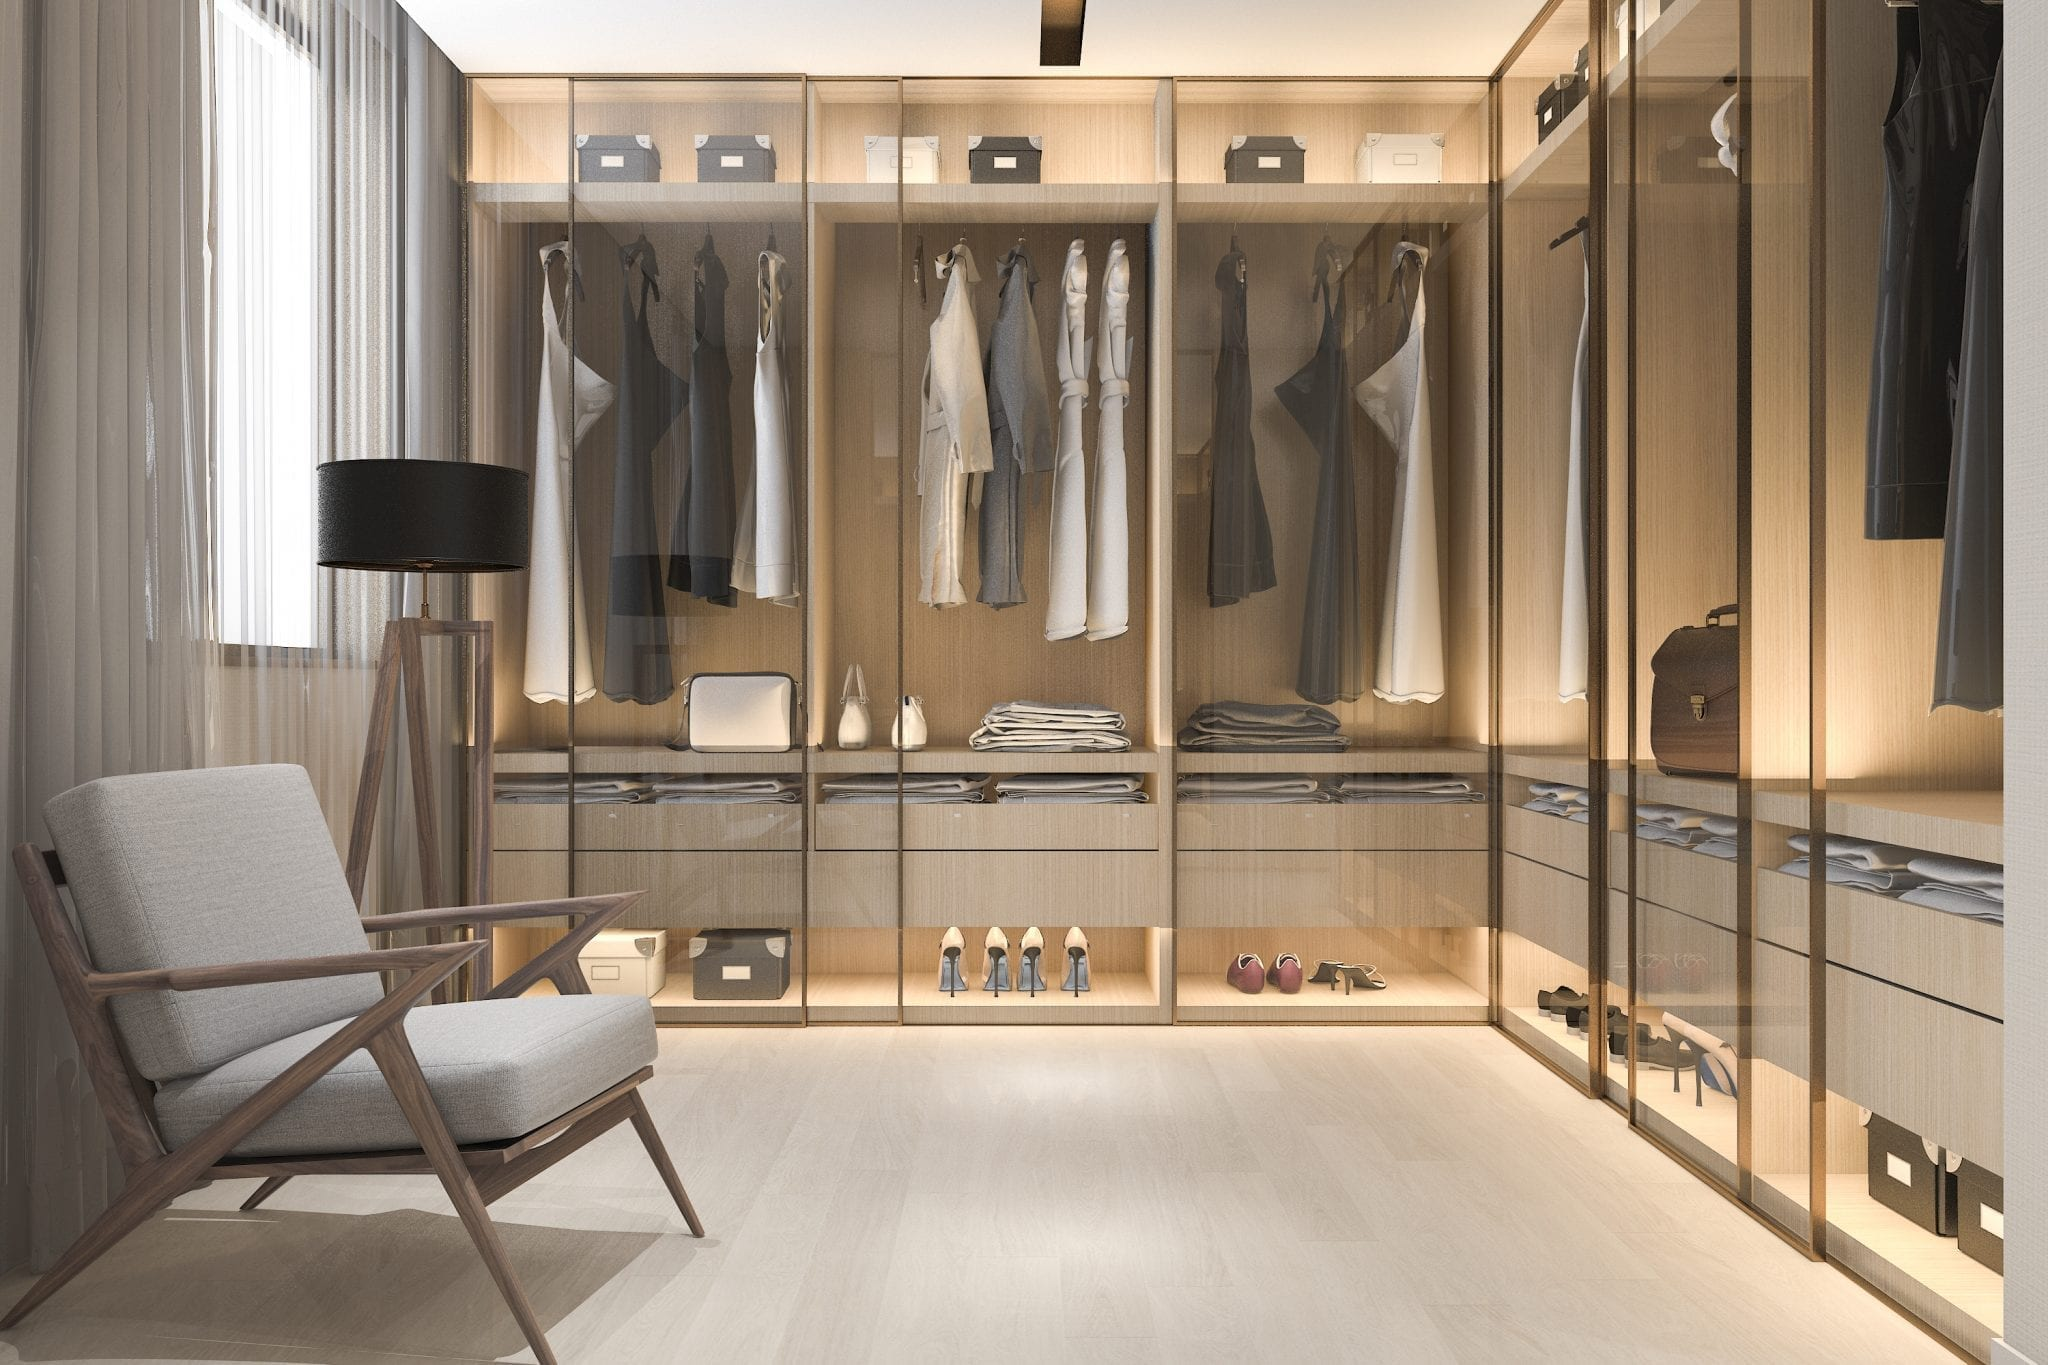 Sensational Office Closet Engrained Cabinetry Countertops Home Interior And Landscaping Dextoversignezvosmurscom